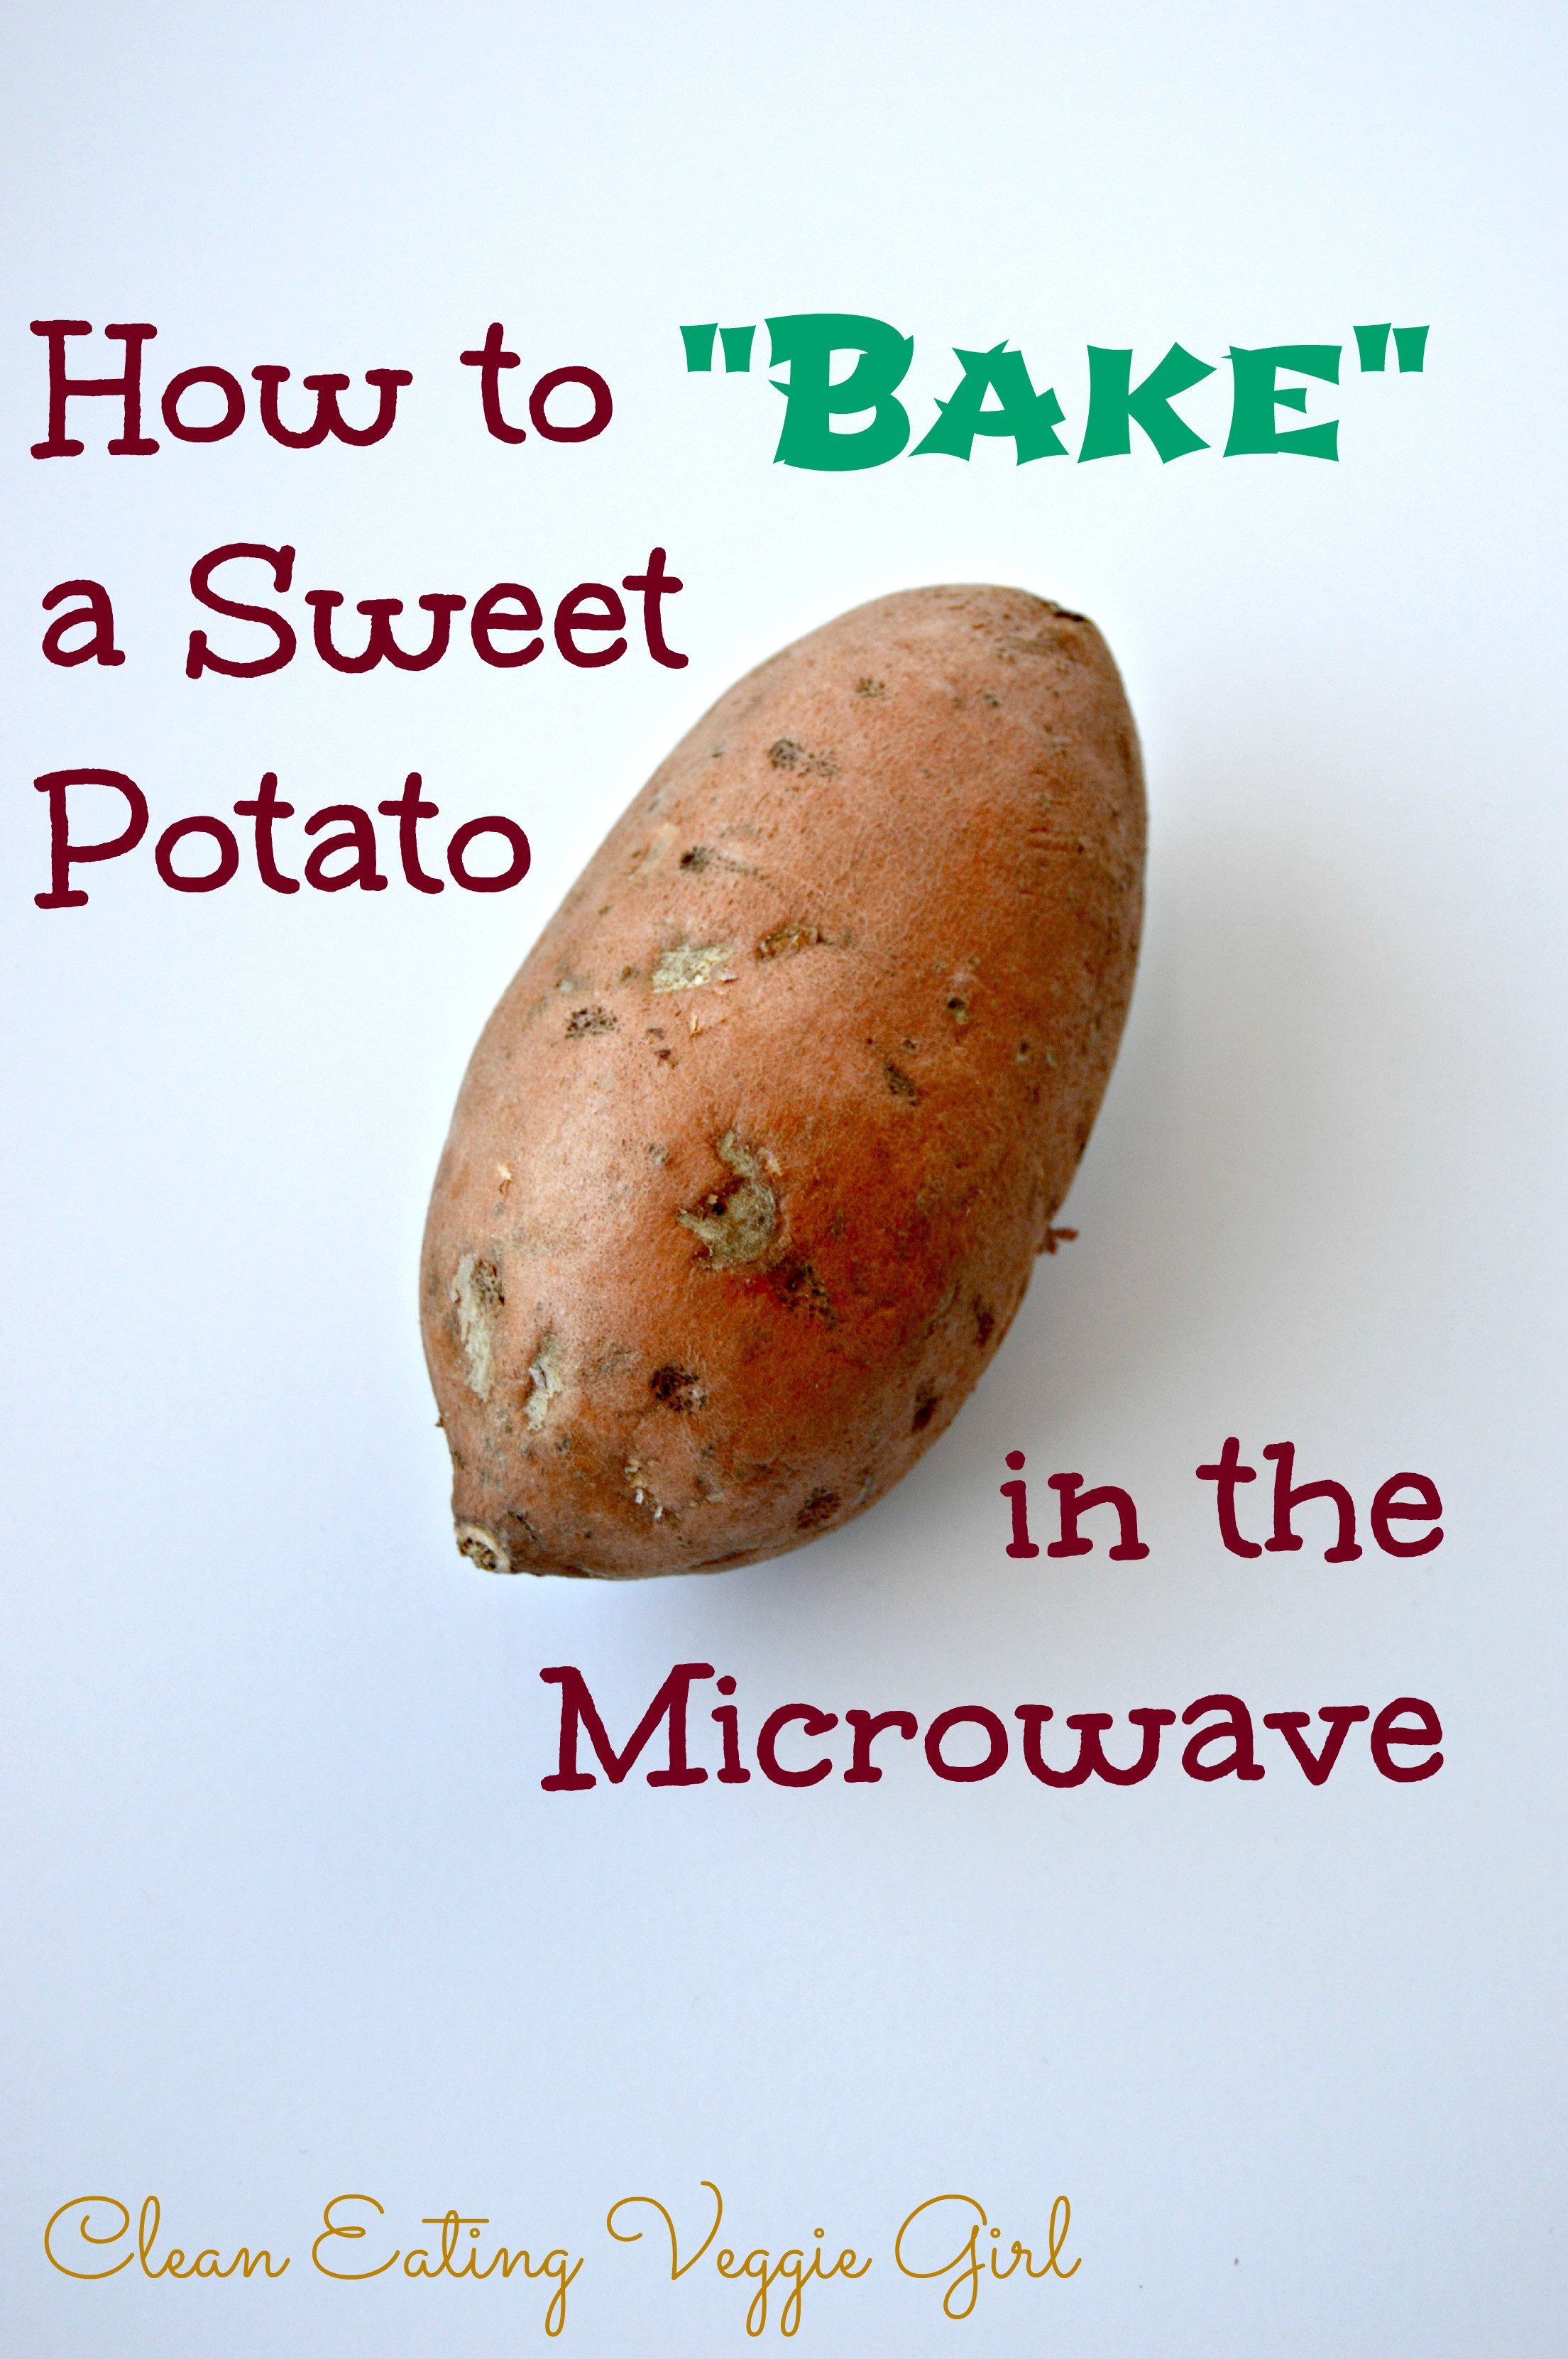 How To Make A Baked Potato In Microwave  How to Make a Baked Sweet Potato in the Microwave Clean